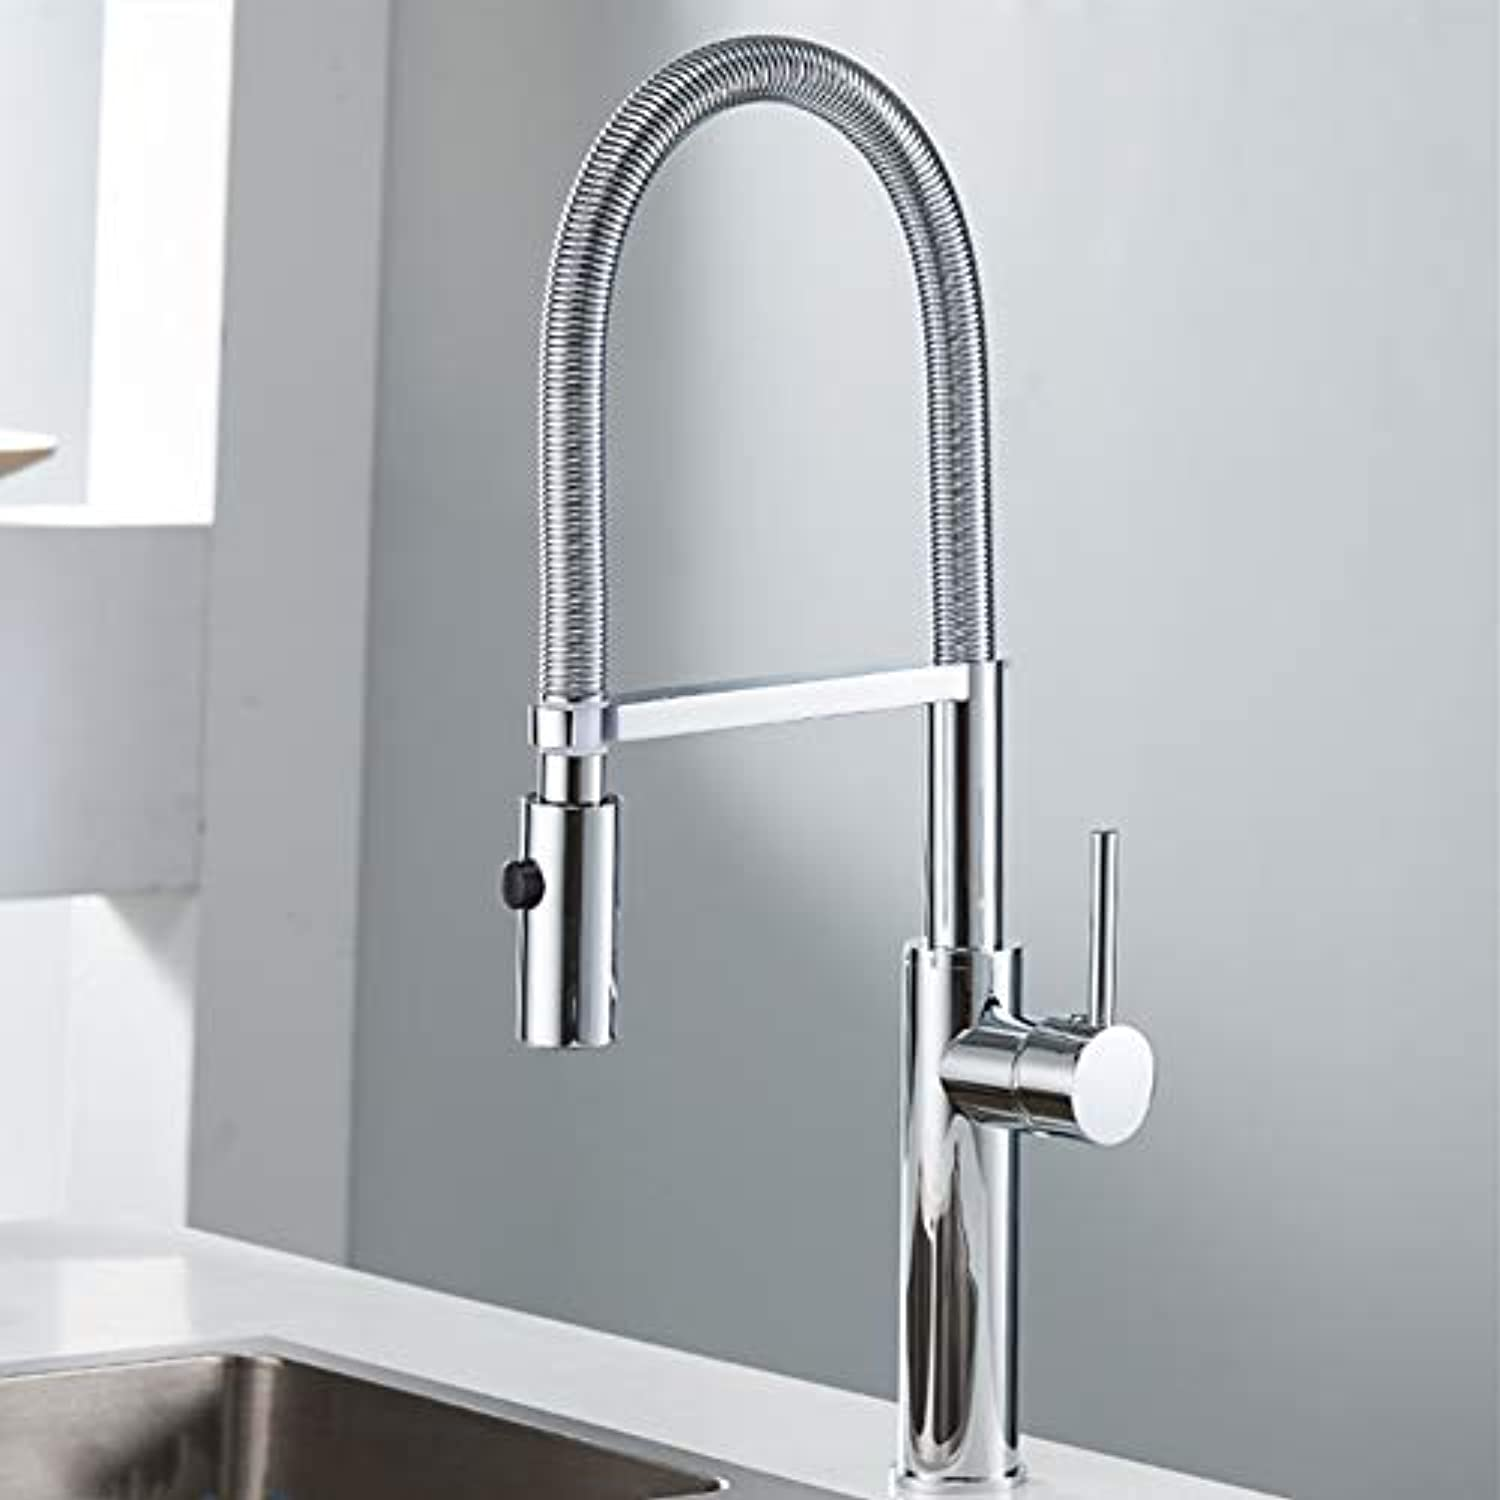 Küchen-Wasserhahn Küche Faucet Newly Design 360 Swivel Solid Brass Brass Single Handle Mixer Sink Tap Chrome Hot And Cold Water chrom